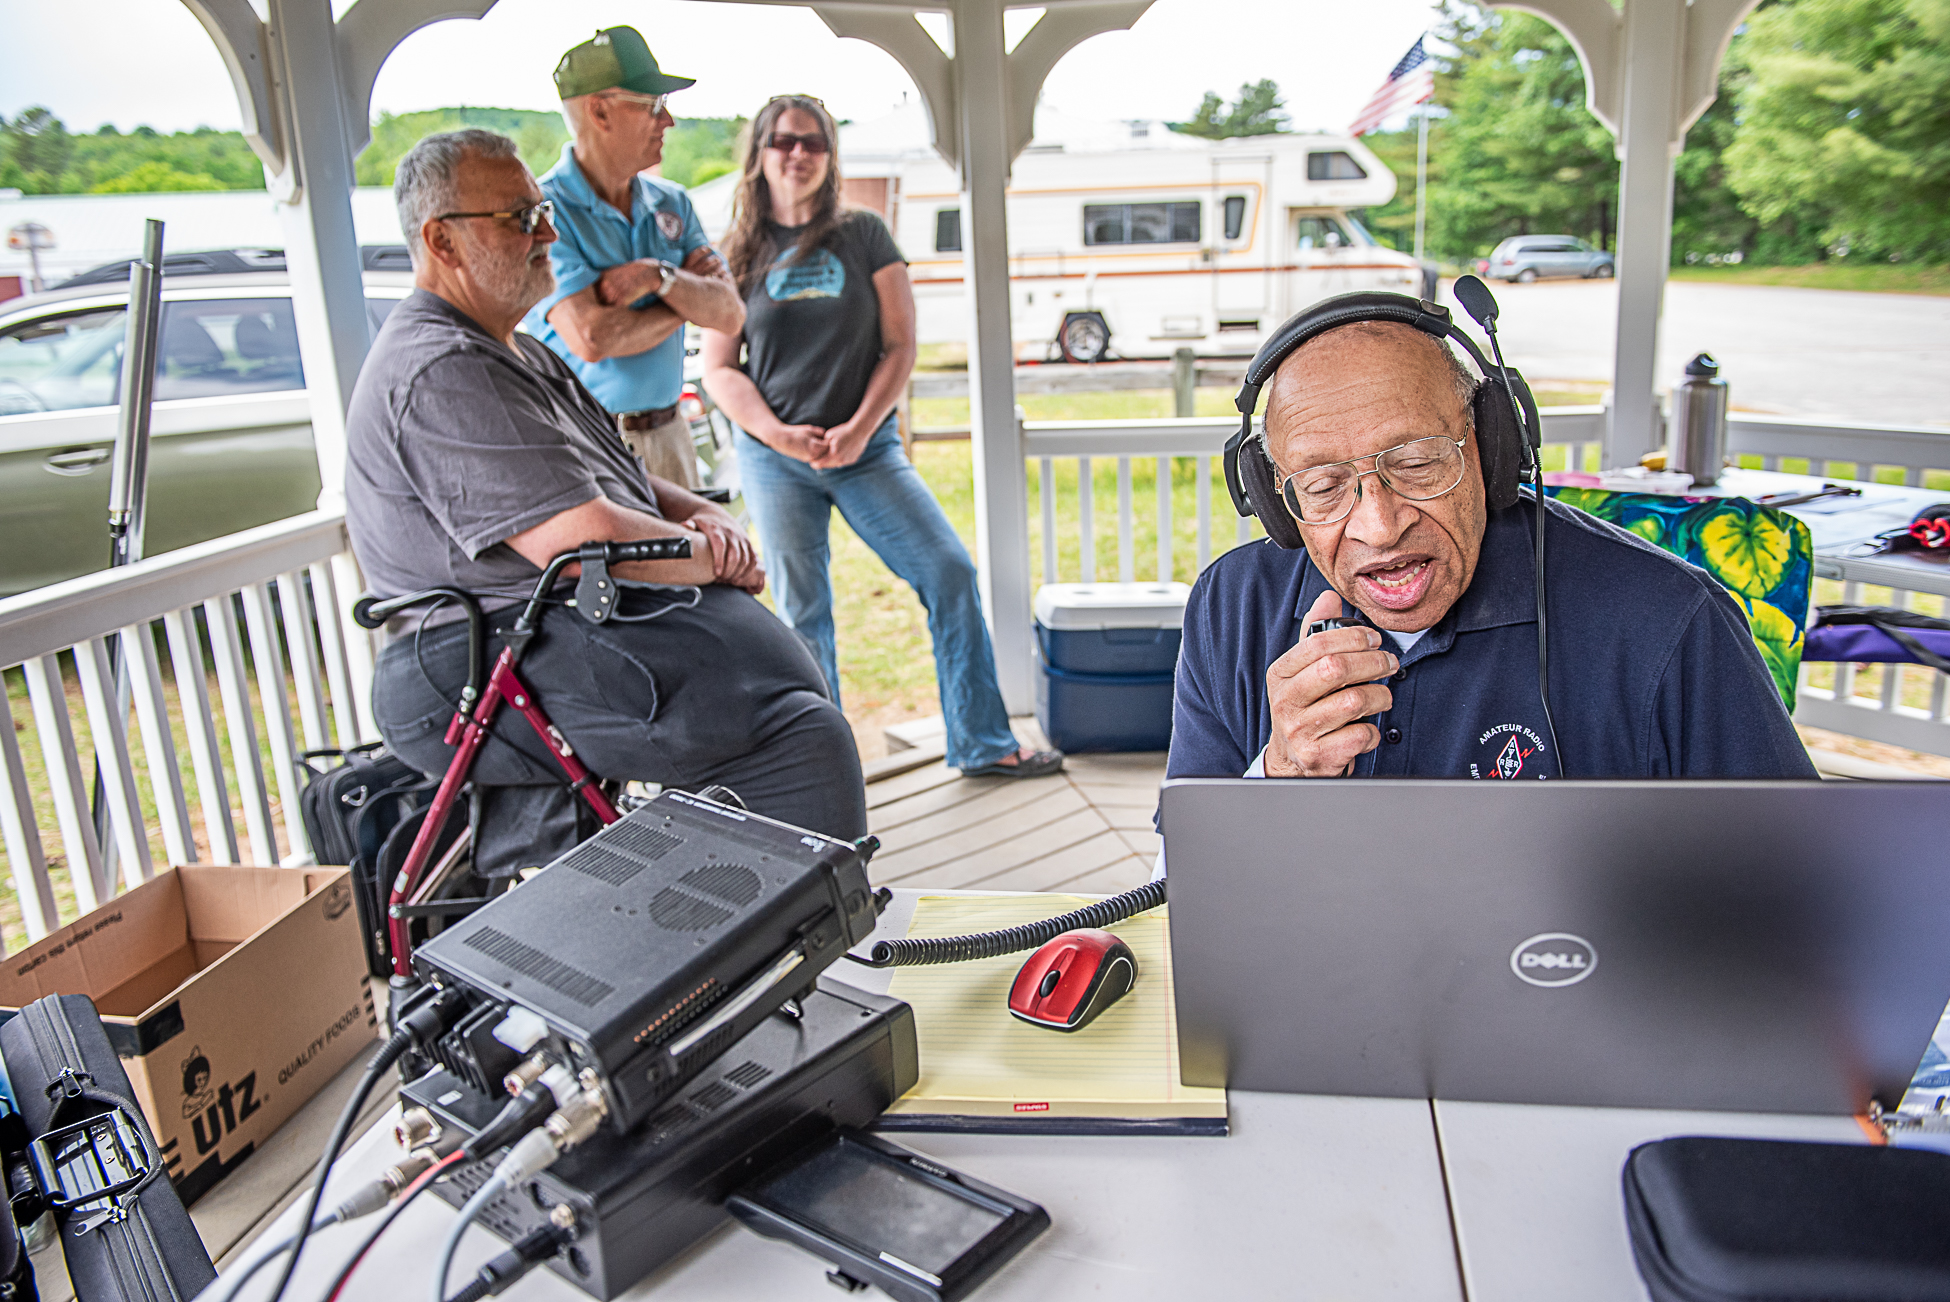 Ham operators take to the field in Sumner | Lewiston Sun Journal